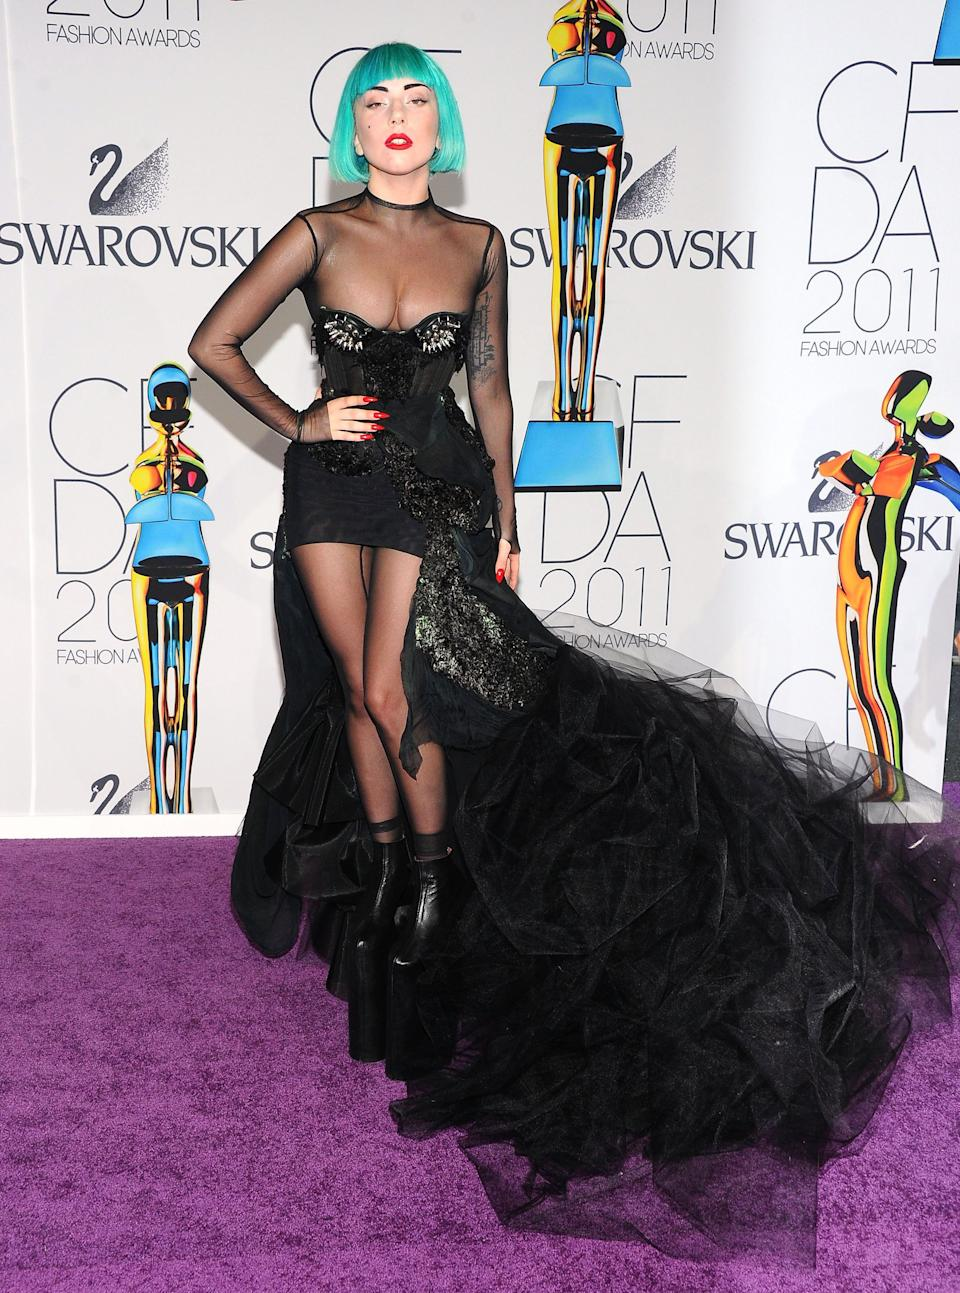 The Grammy-winner wears a custom look by Mugler at the 2011 CFDA Fashion Awards, where she received the Fashion Icon award.